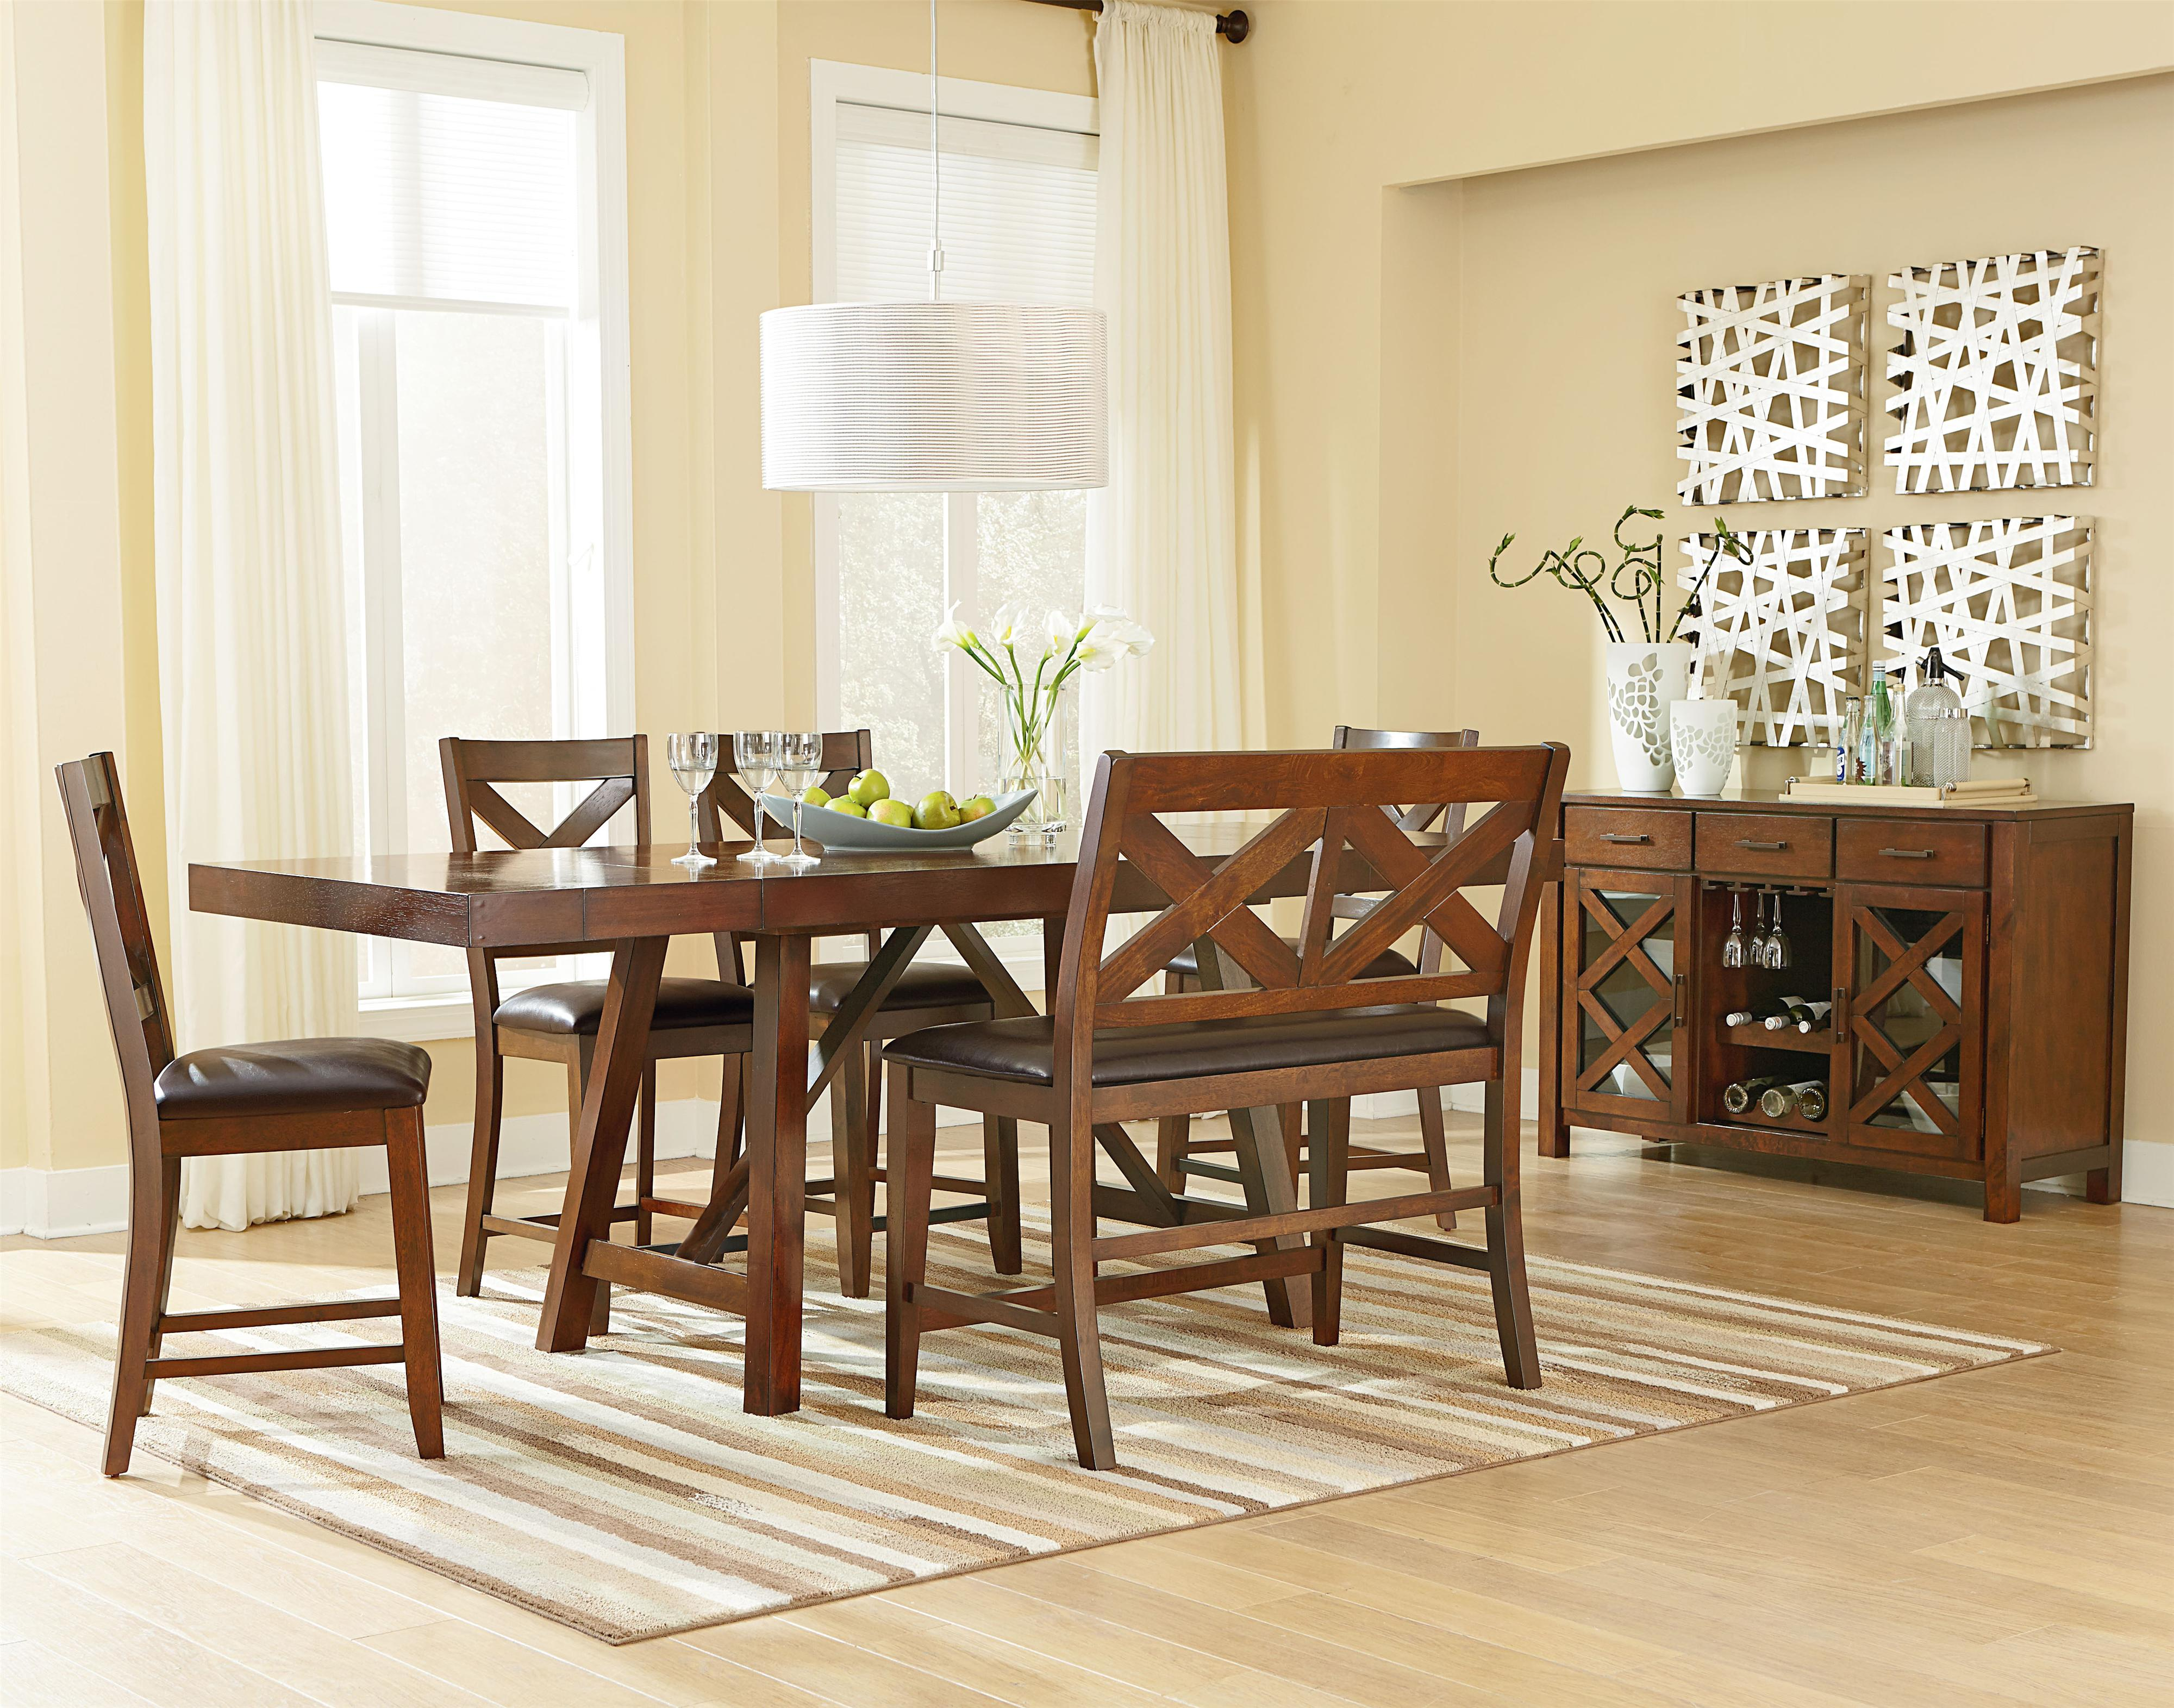 6 Piece Counter Height Table Set With Bench And Bar Stools